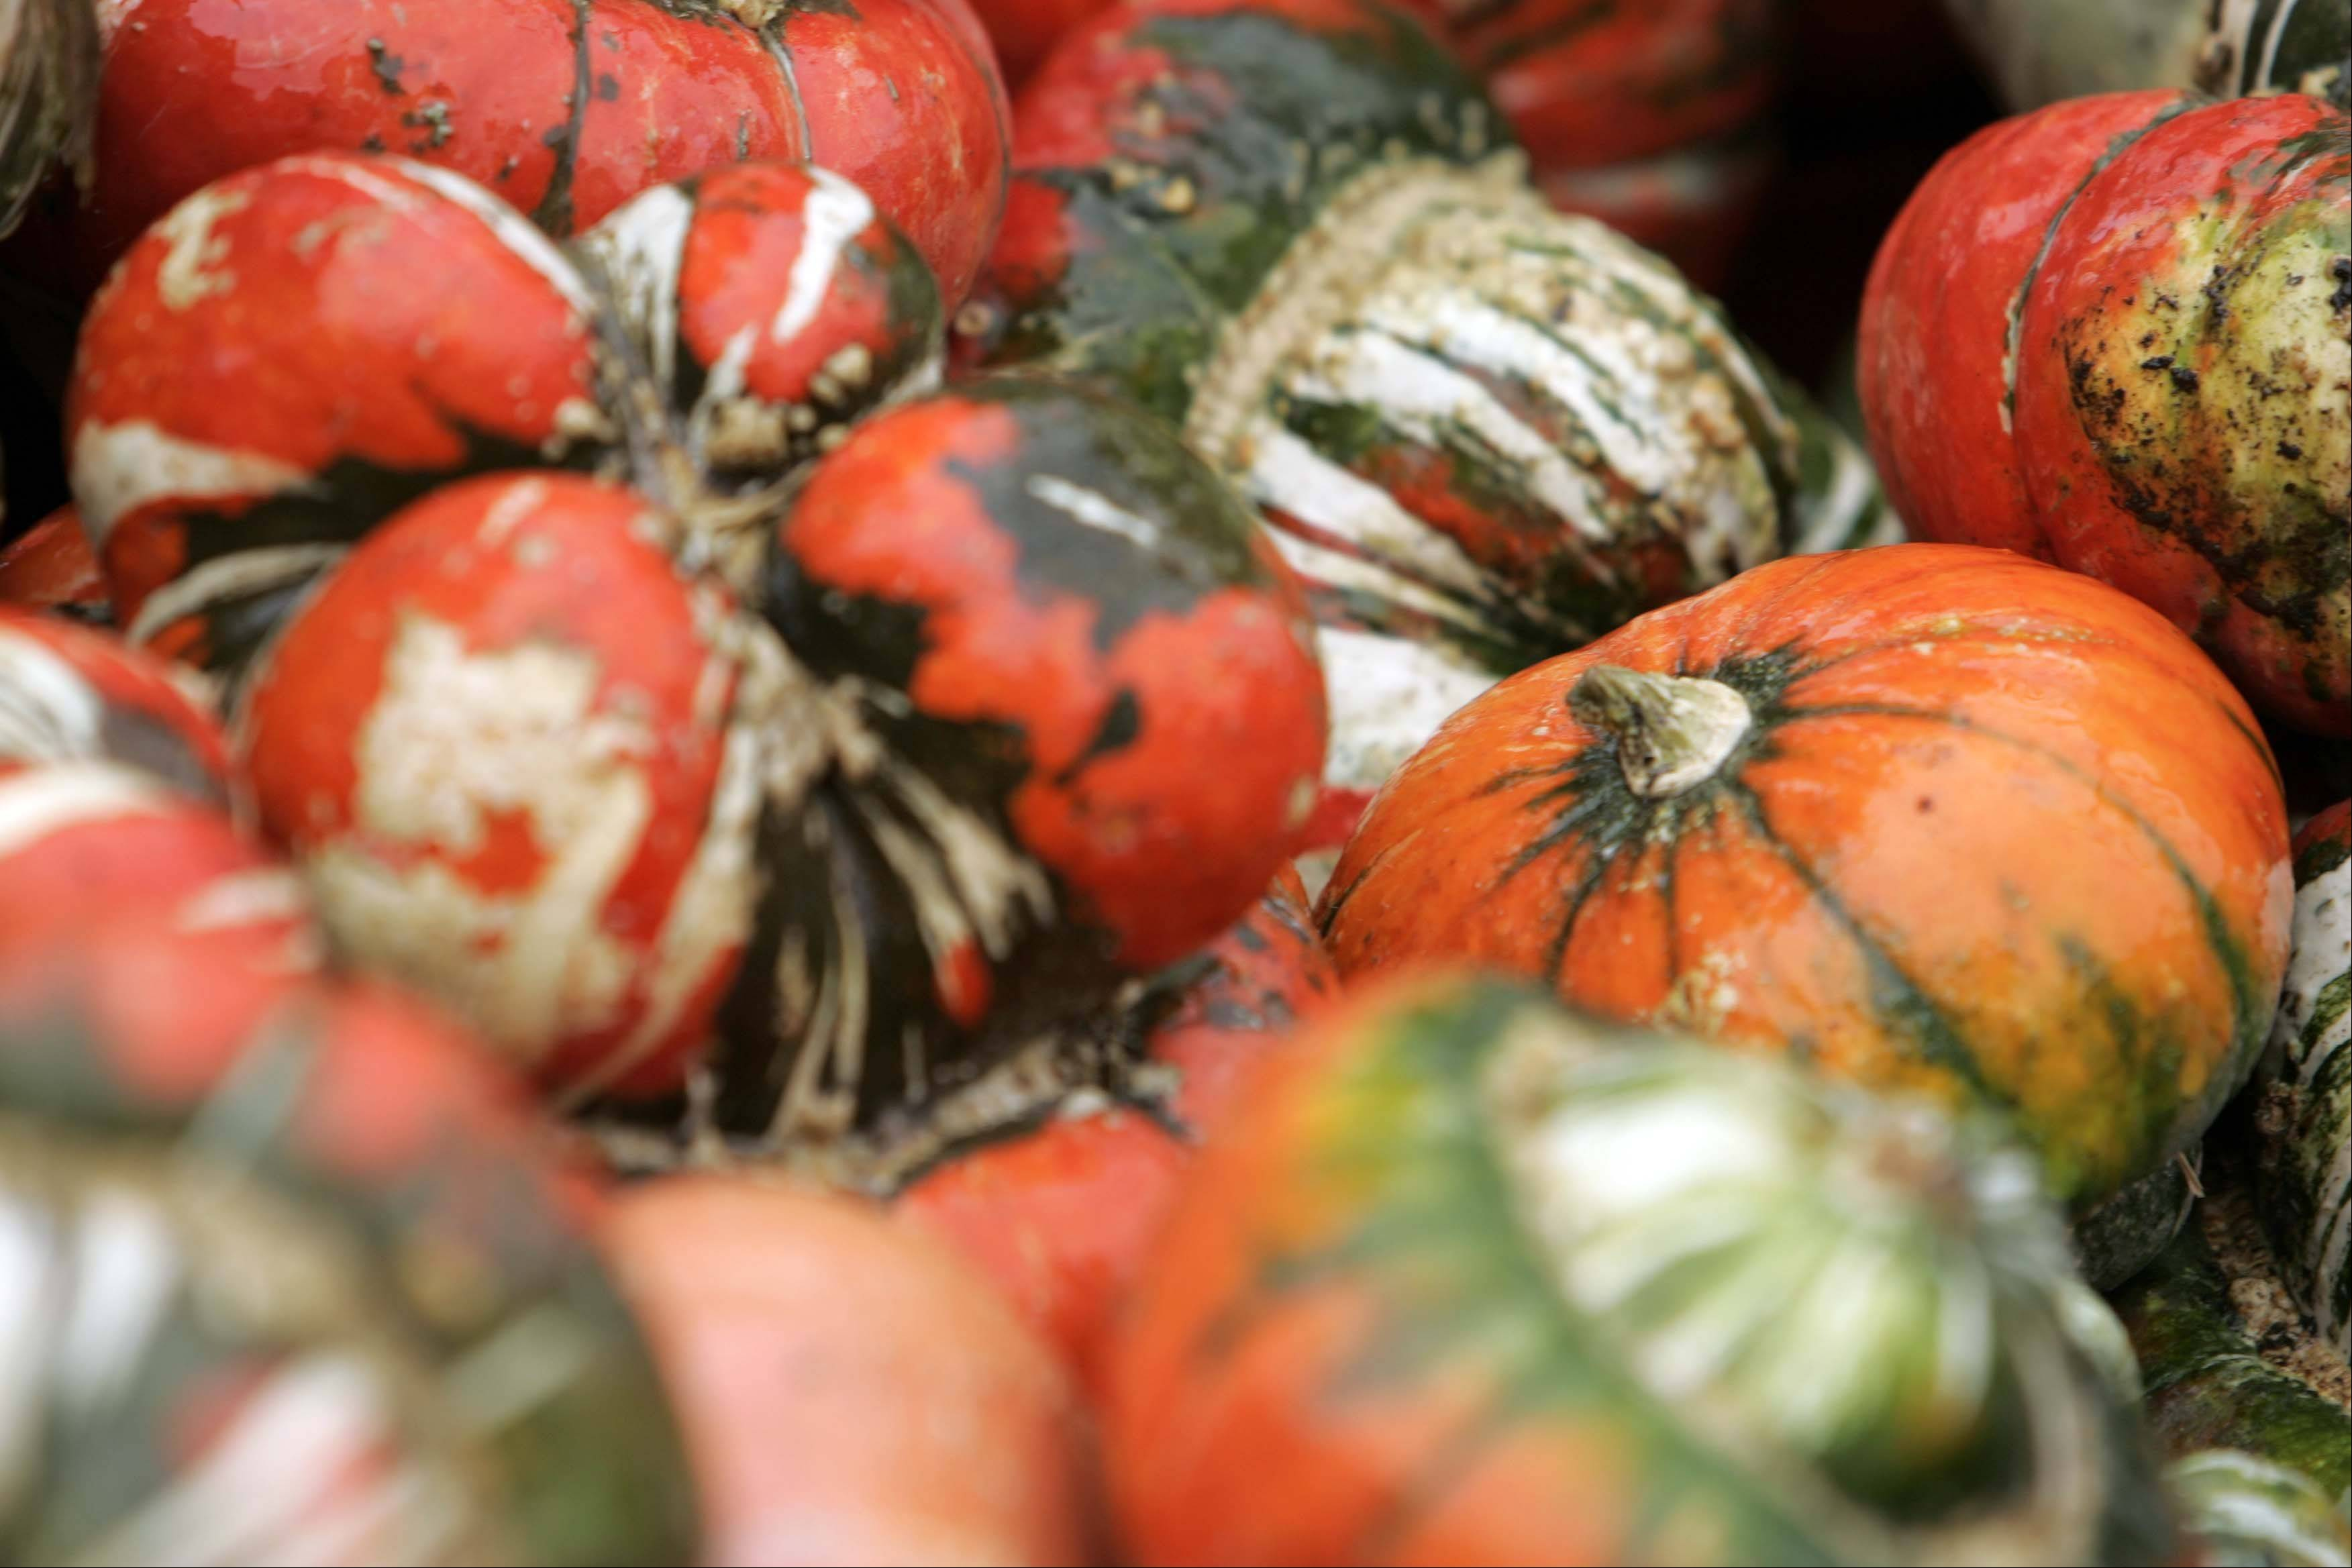 Turk's Turban squash at Randy's Vegetables in Elgin Wednesday October 3, 2012.